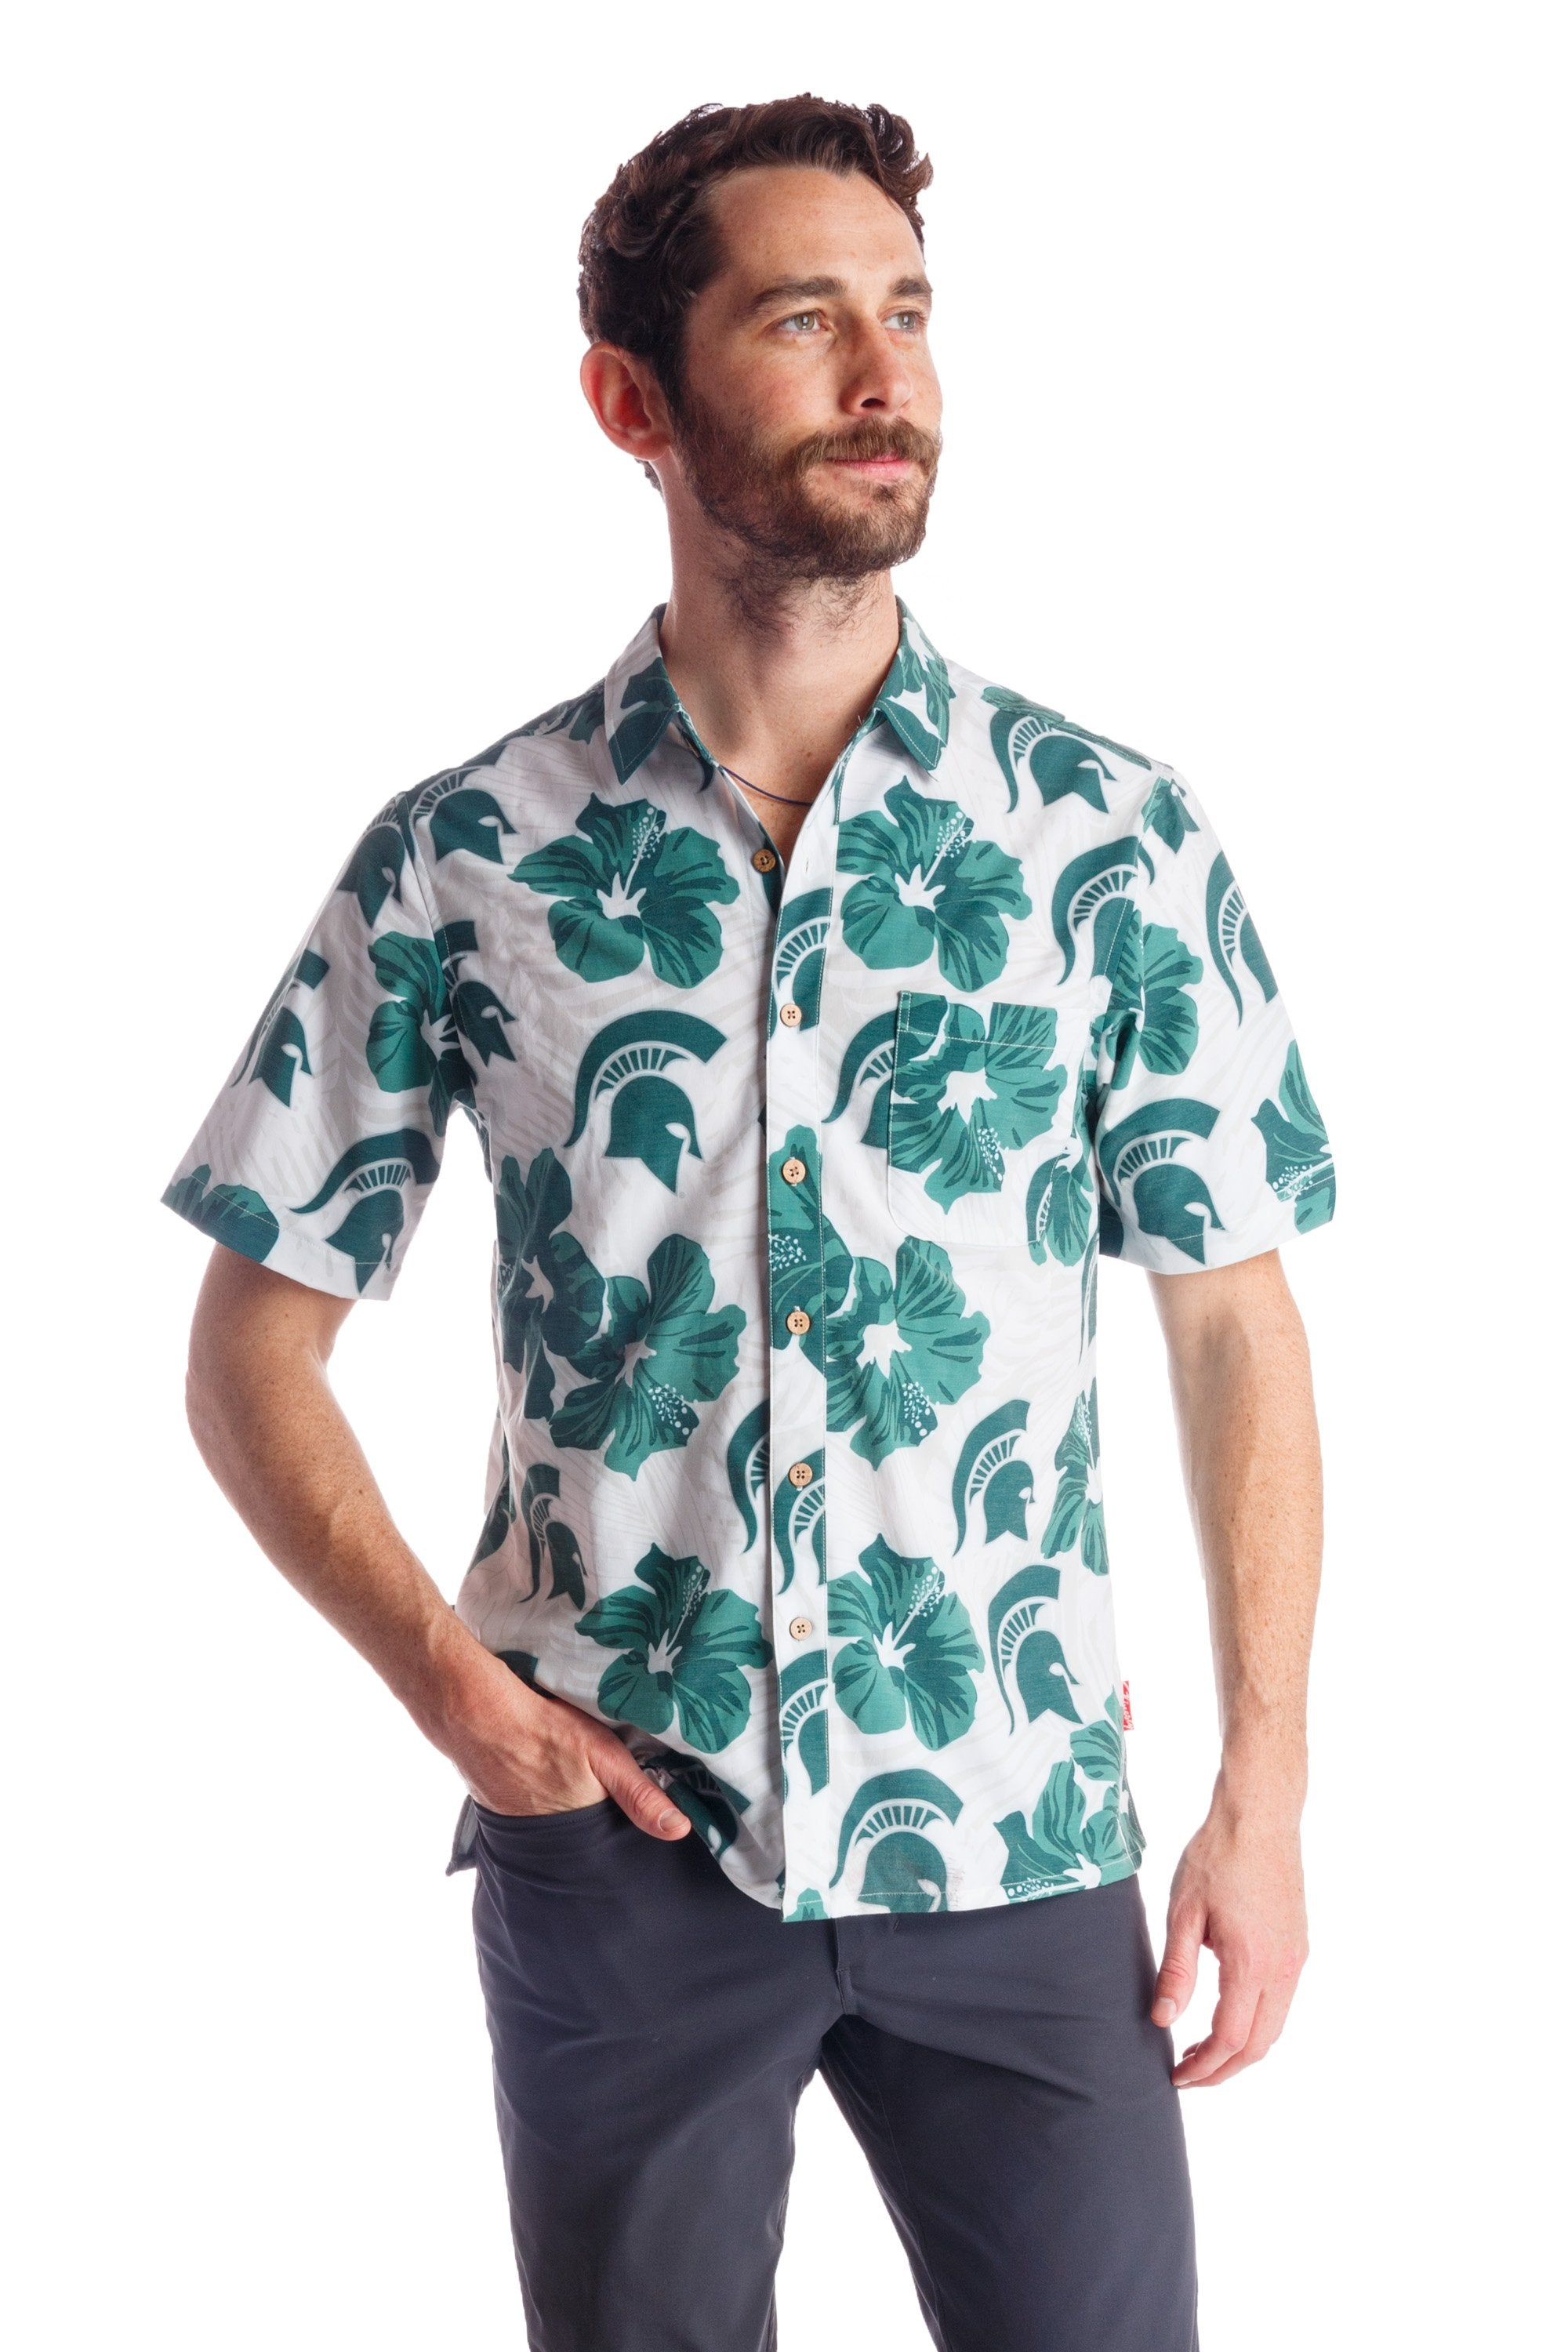 Men's Michigan state university hawaiian shirt